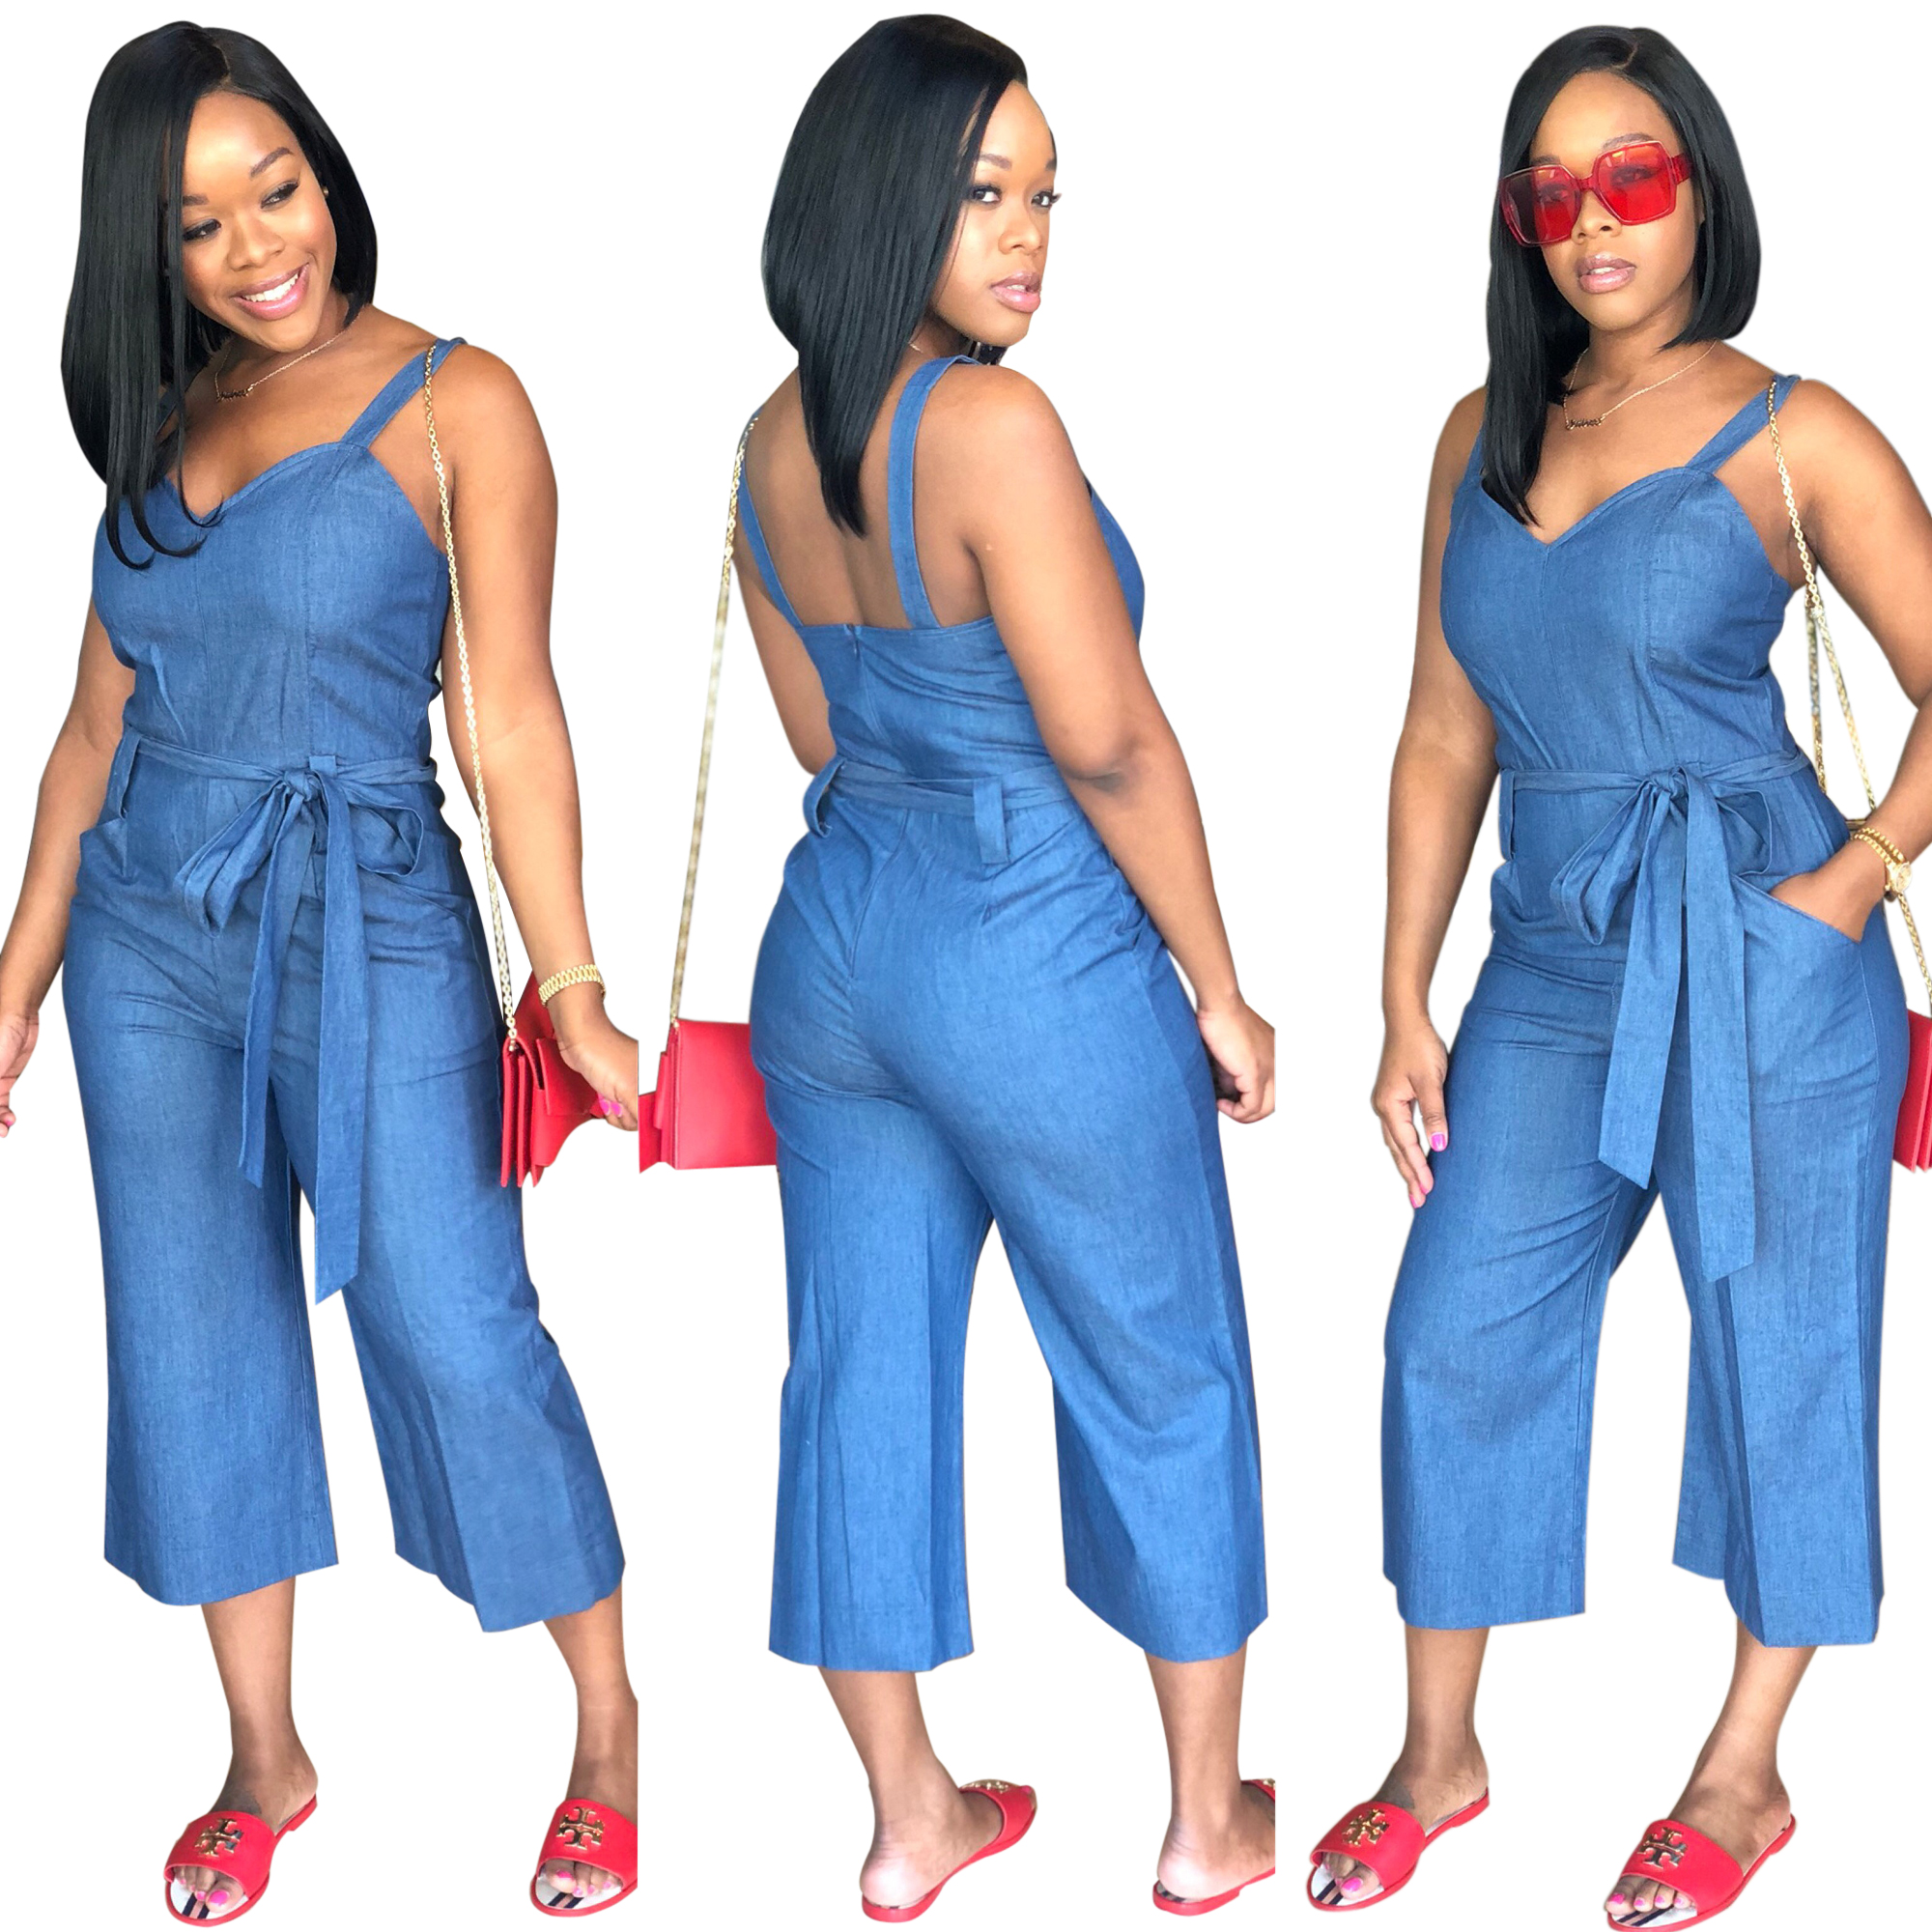 8978 strapless bandage short cowboy jeans jumpsuit denim romper womens